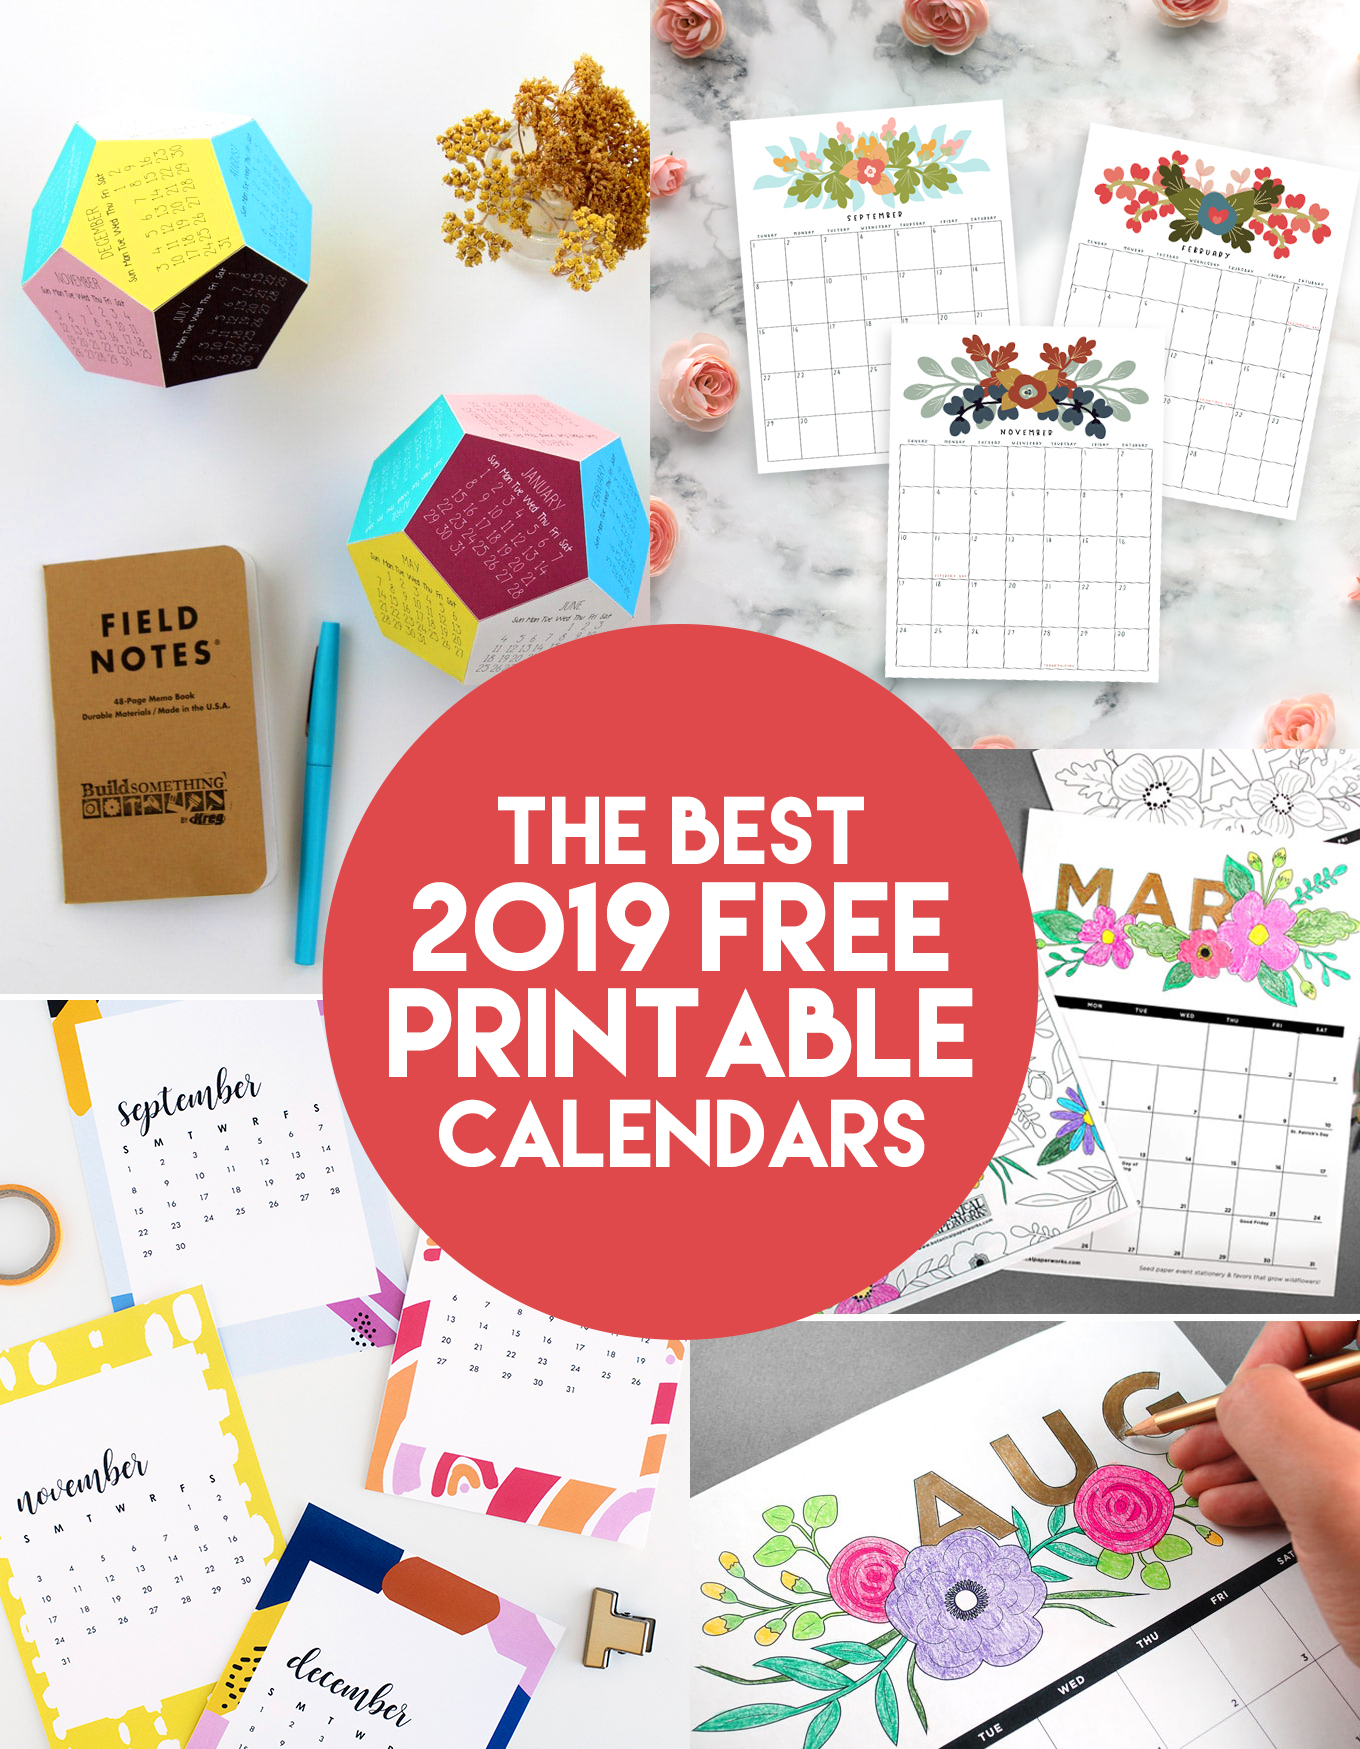 The Best 2019 Free Printable Calendars Thecraftpatchblog Com